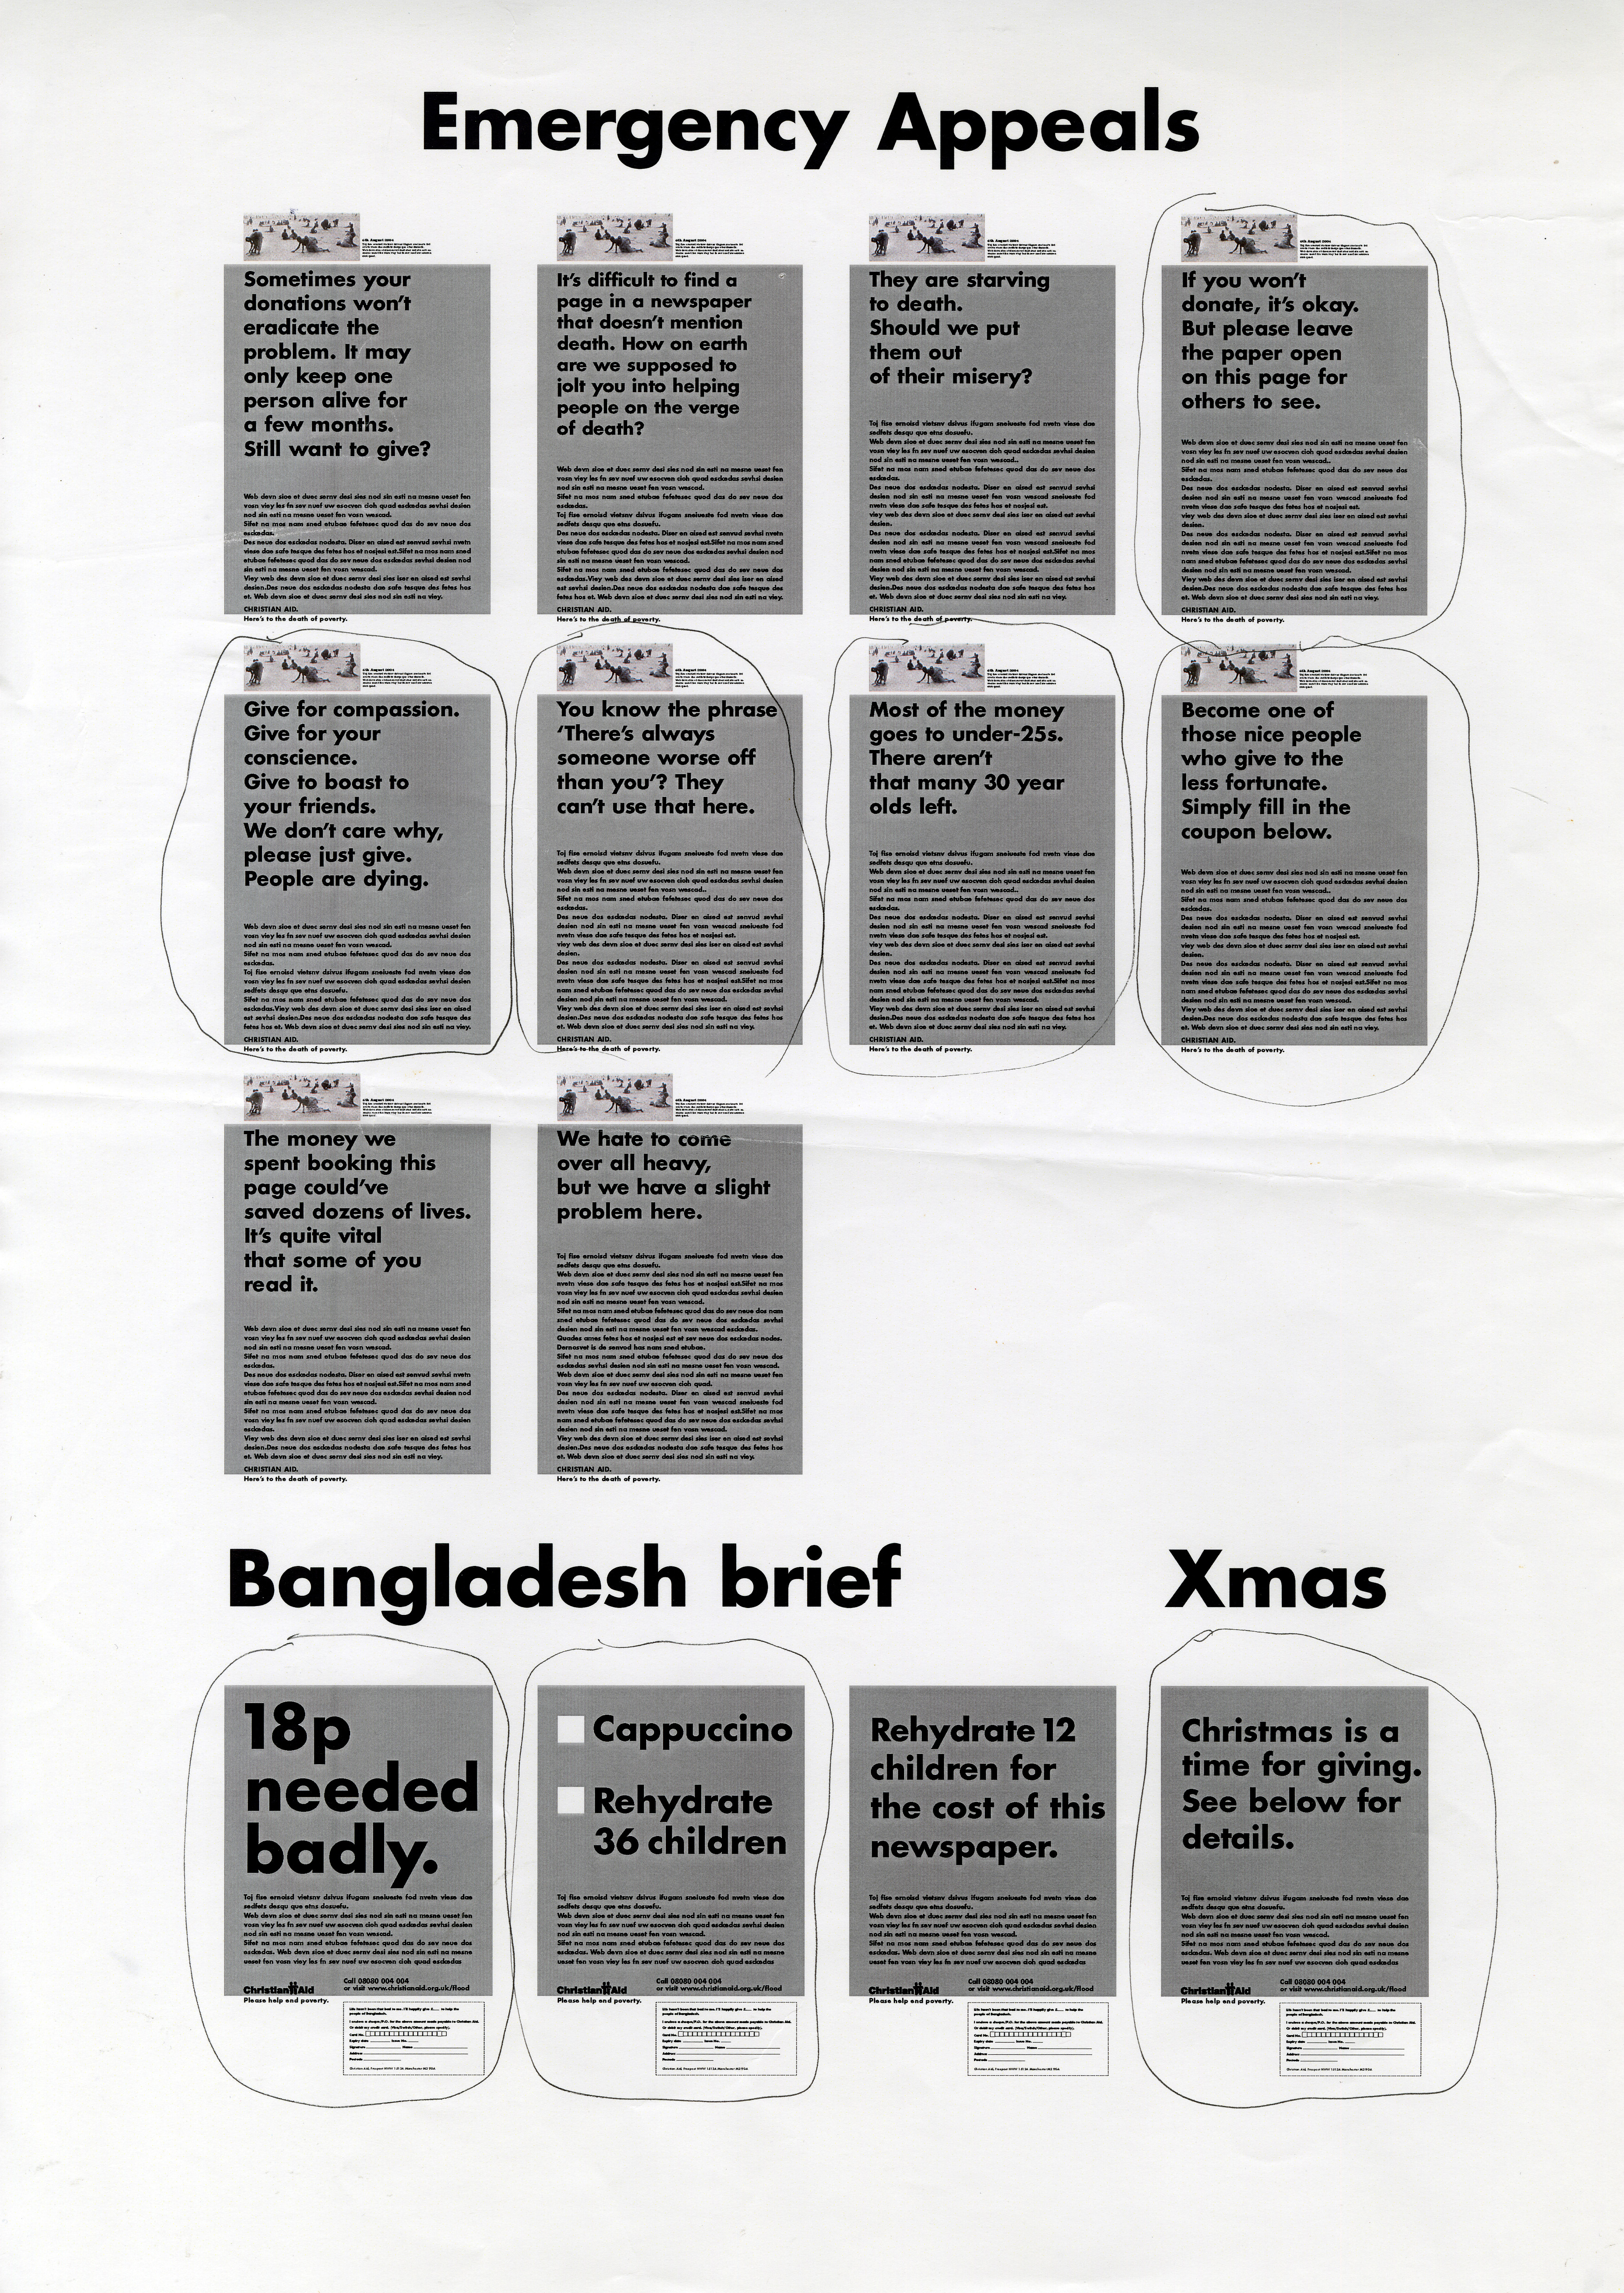 Christian Aid, RED, Page of Roughs - D, CDD-01.jpg